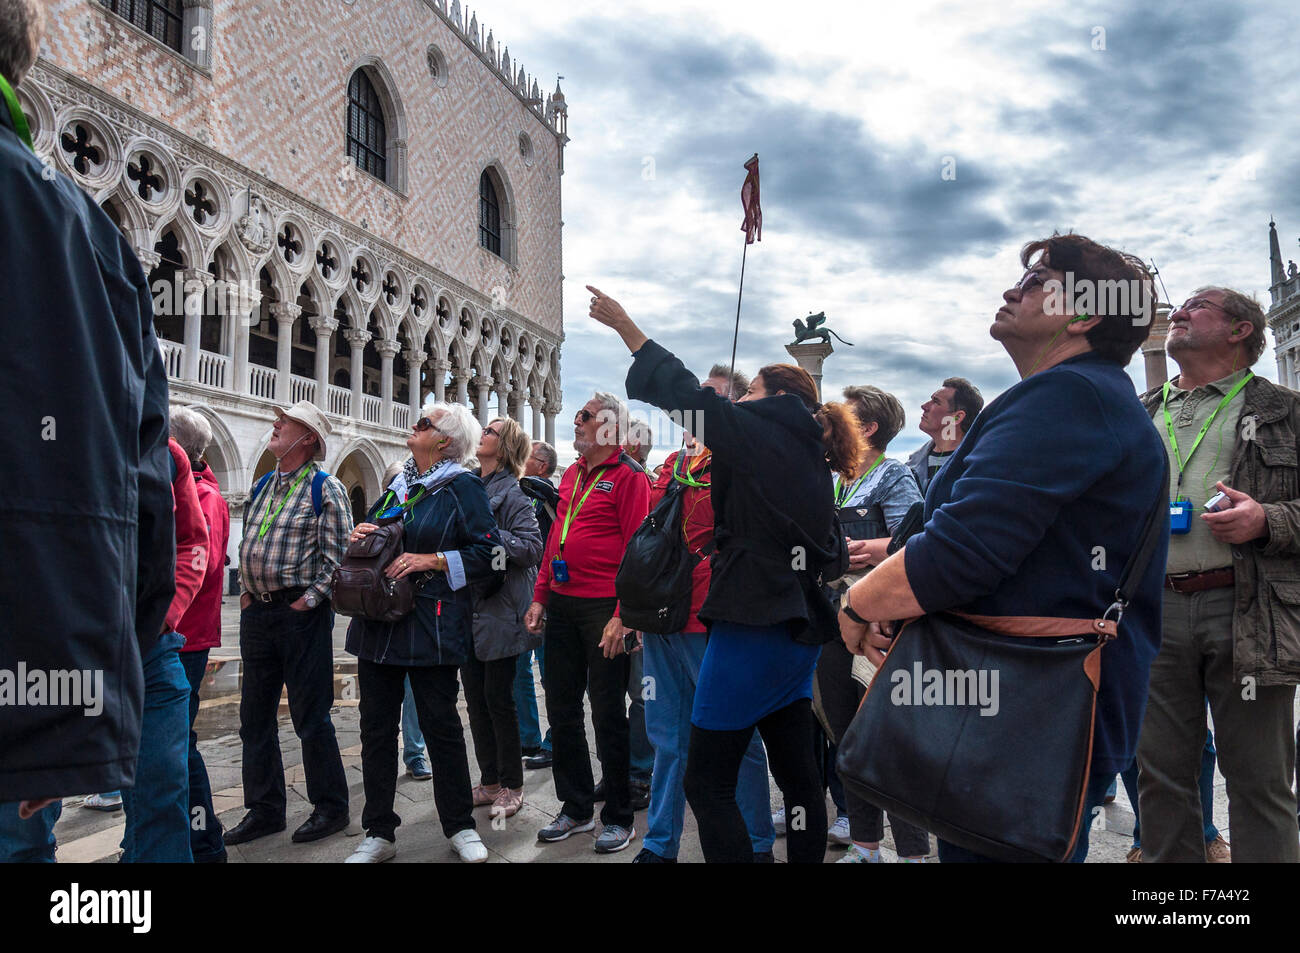 Tourists guided tour Piazzetta San Marco in Venice, Italy - Stock Image